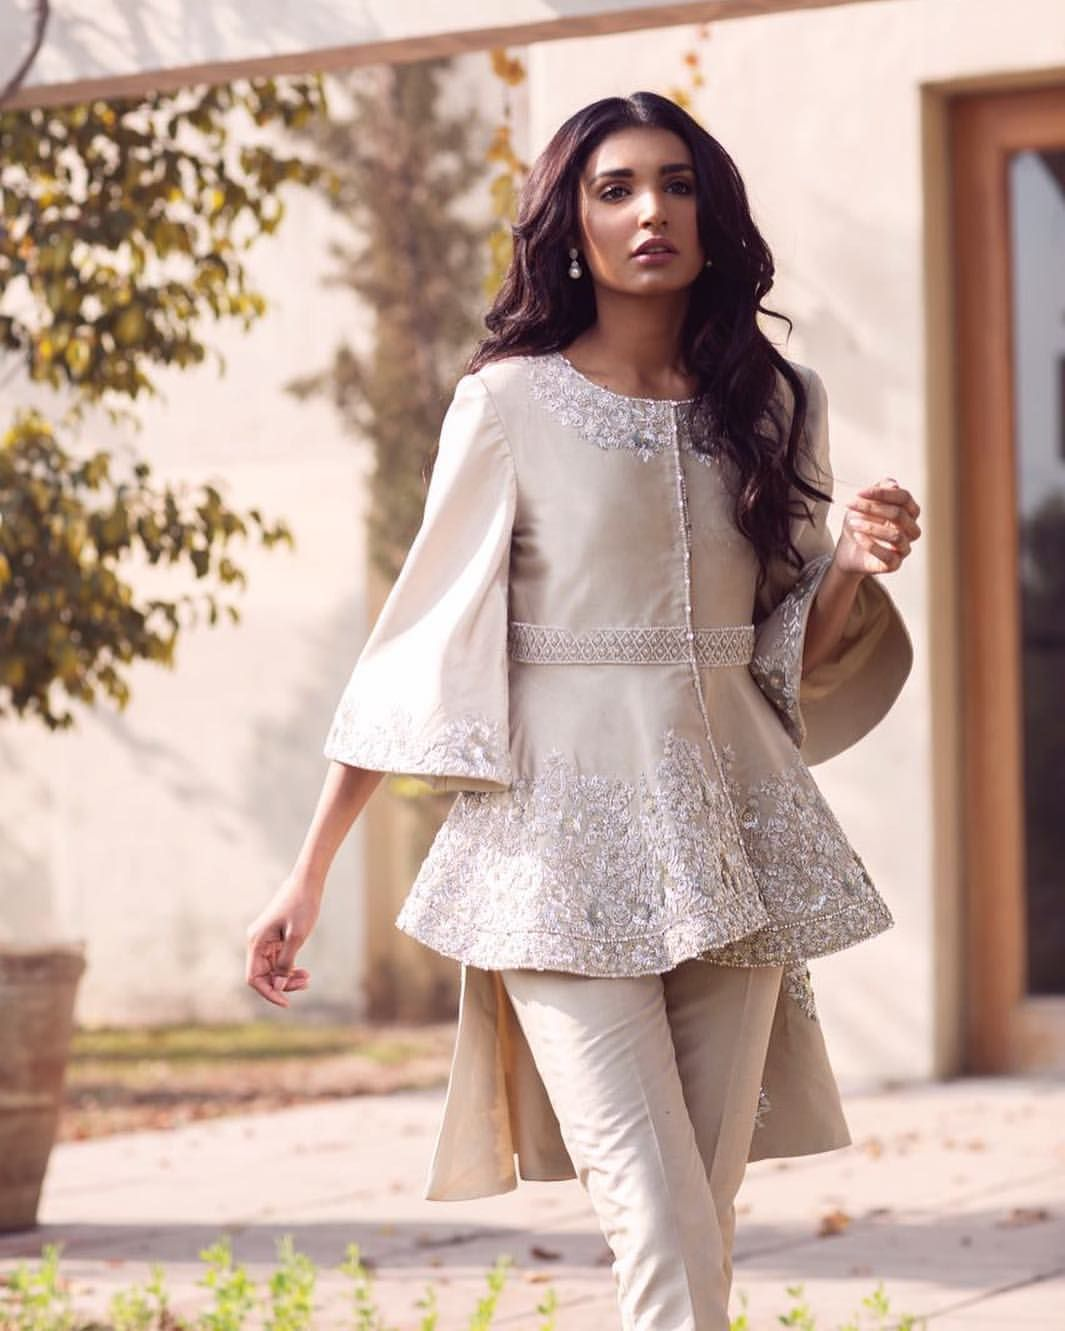 d471dad6e7d An elegant high low embellished top paired with straight cigarette pants  from Saleha Kashif s spring summer 2018 collection